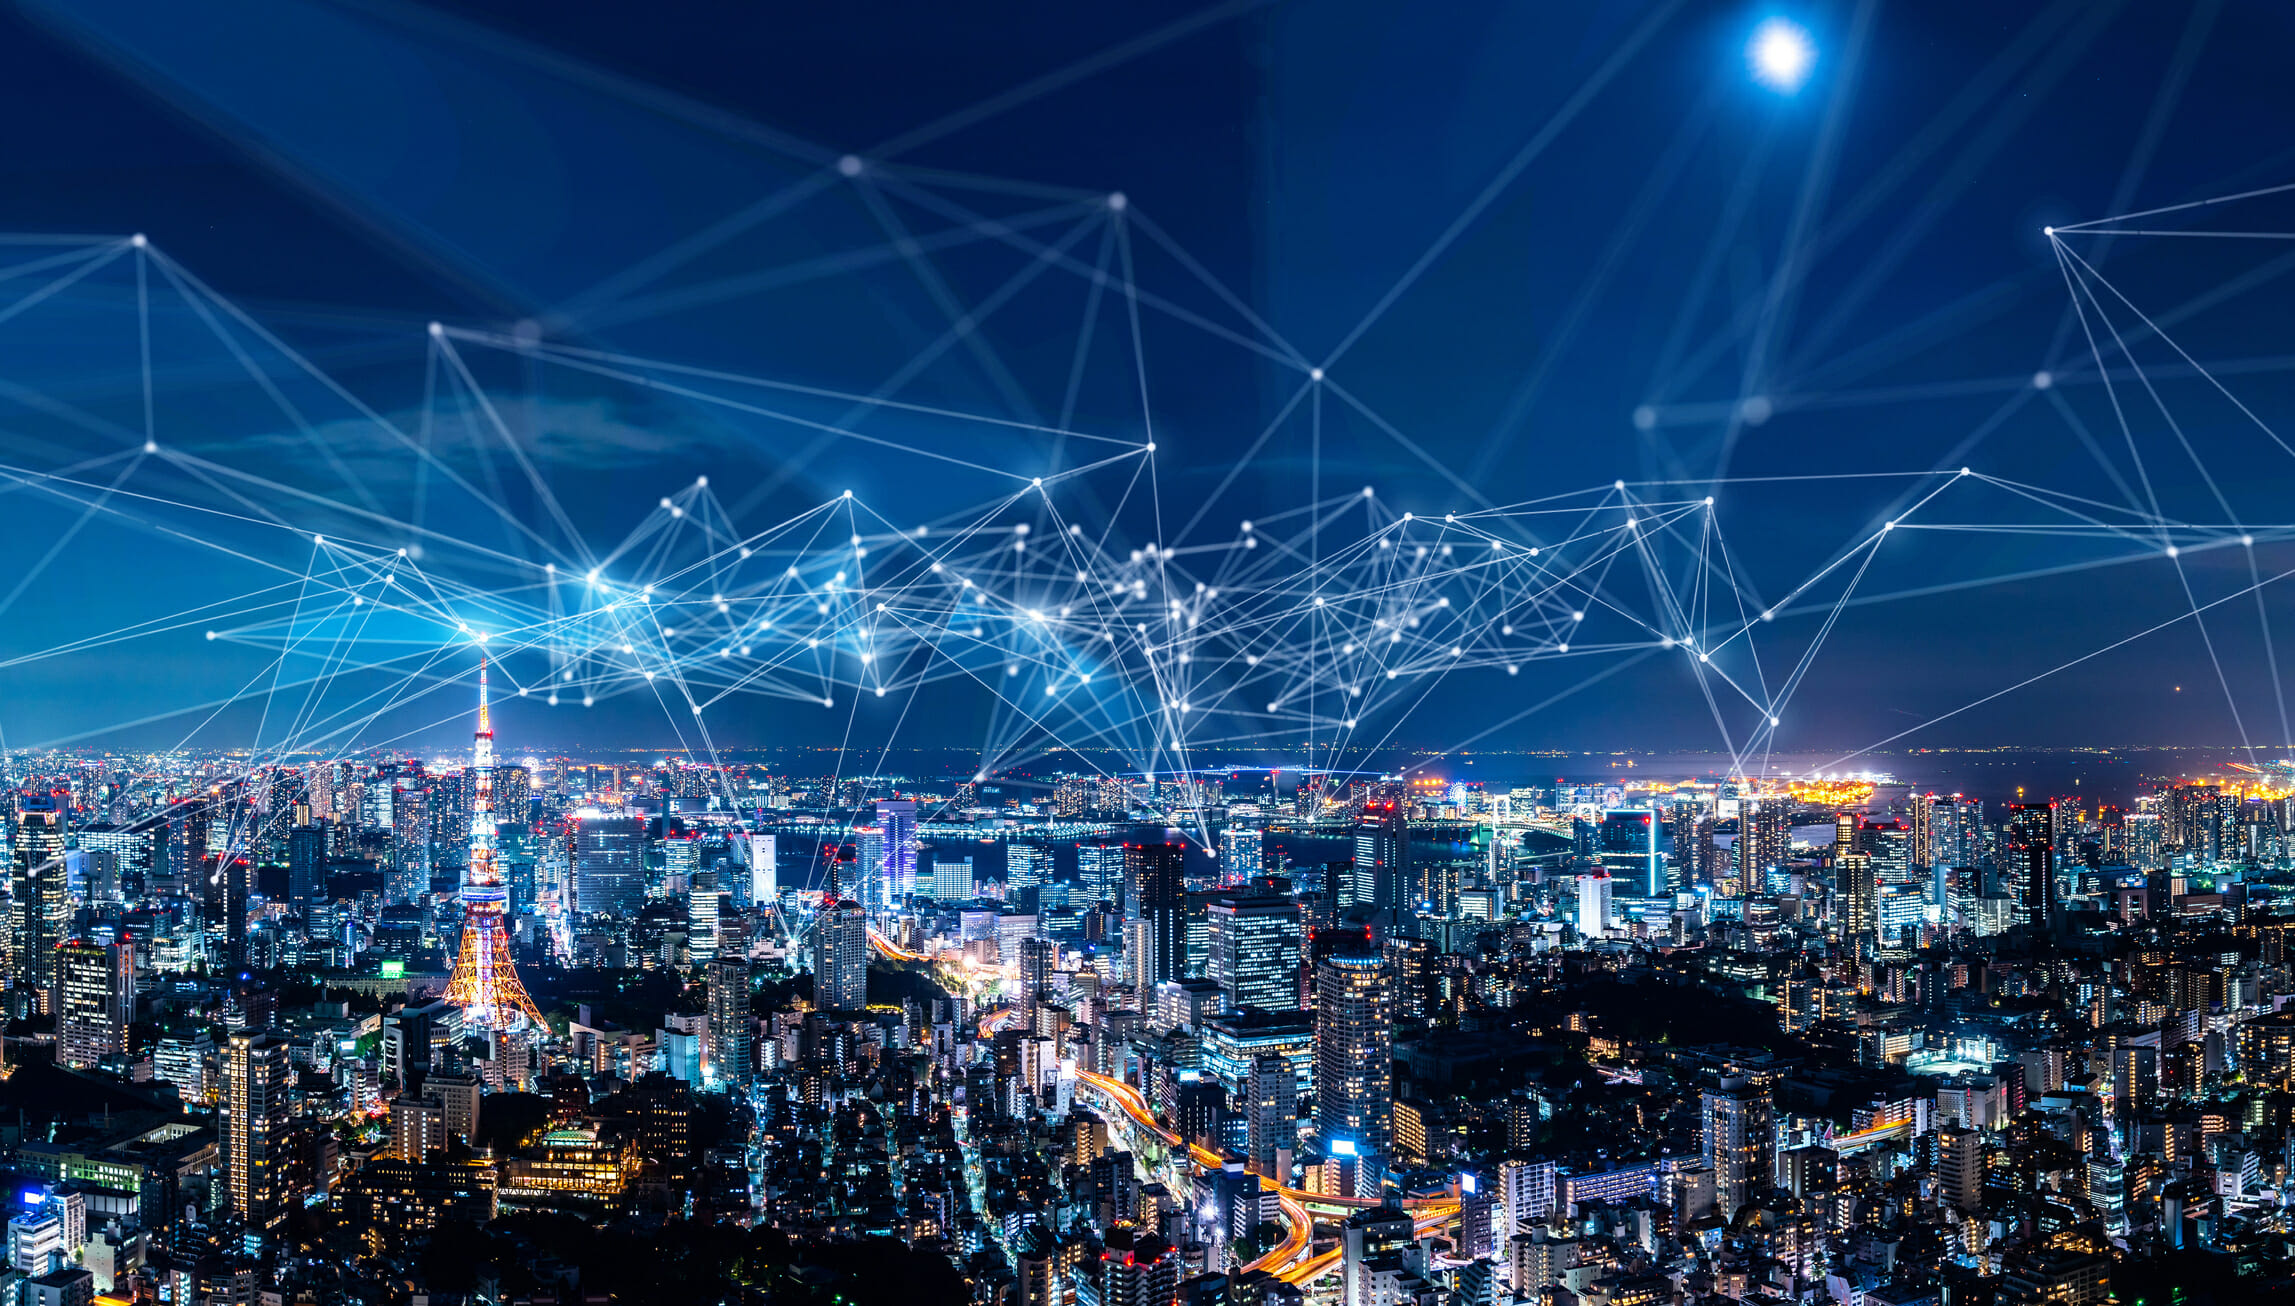 Artificial Intelligence and Life in 2030 - AI Forum